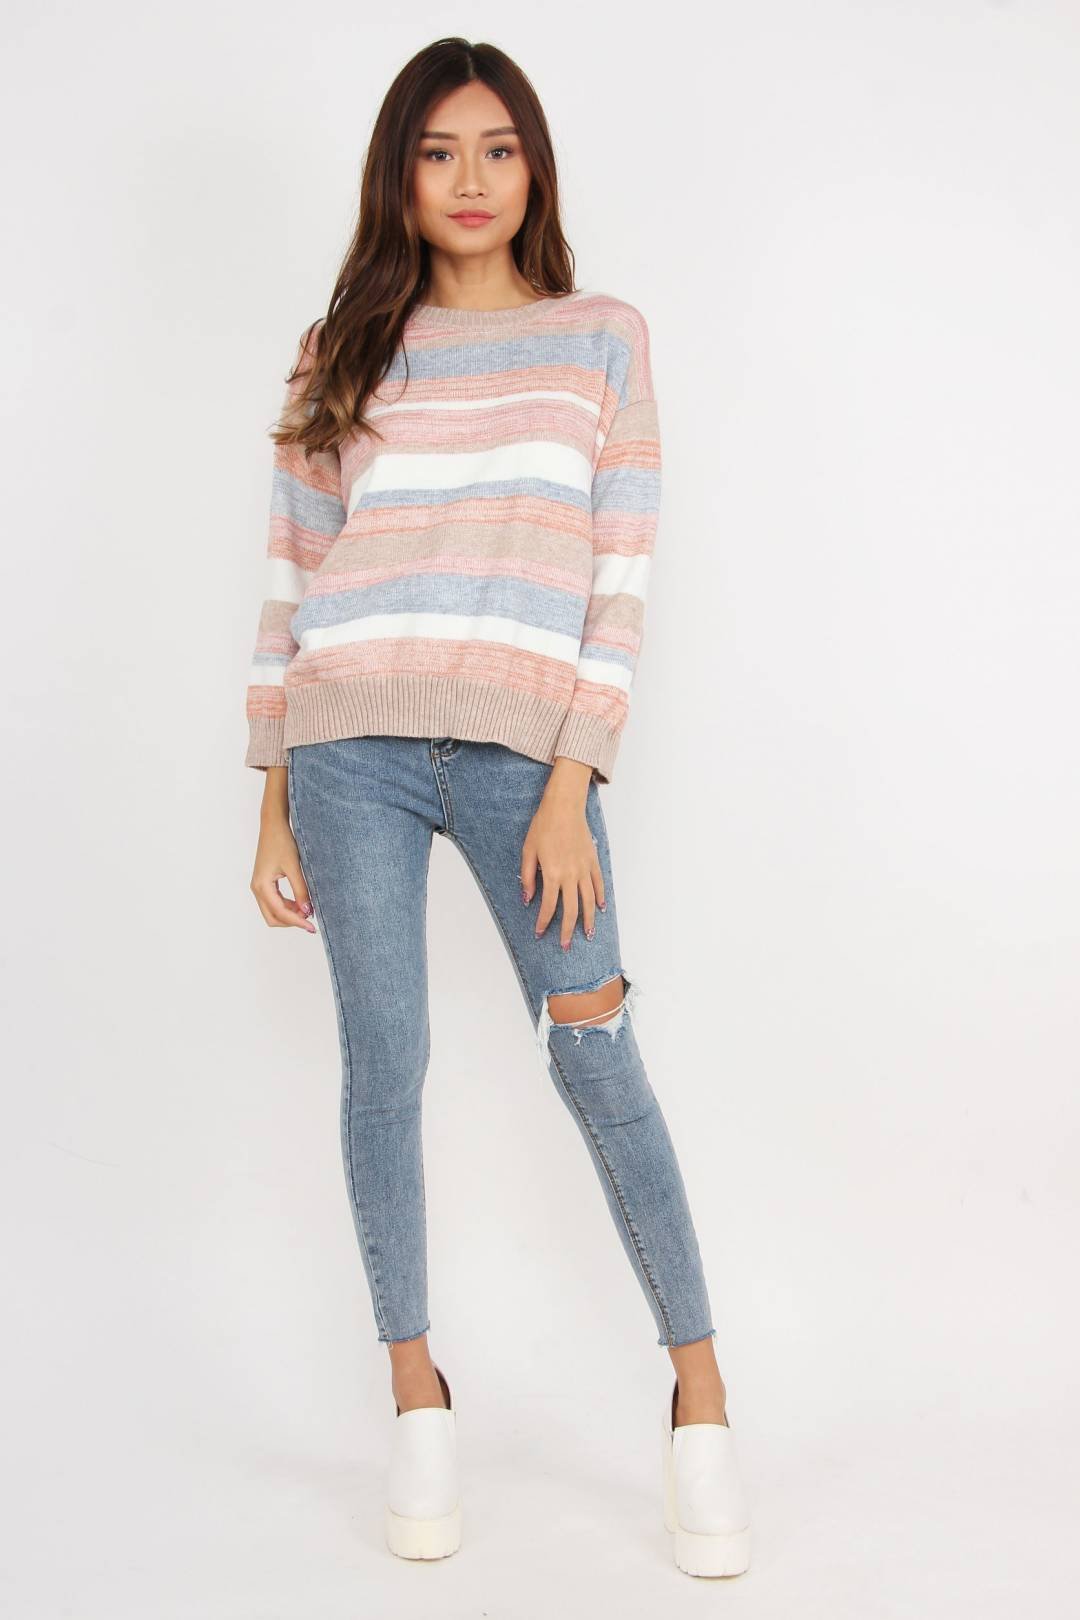 Candy Dreaming Knitted Sweater (Neutral)